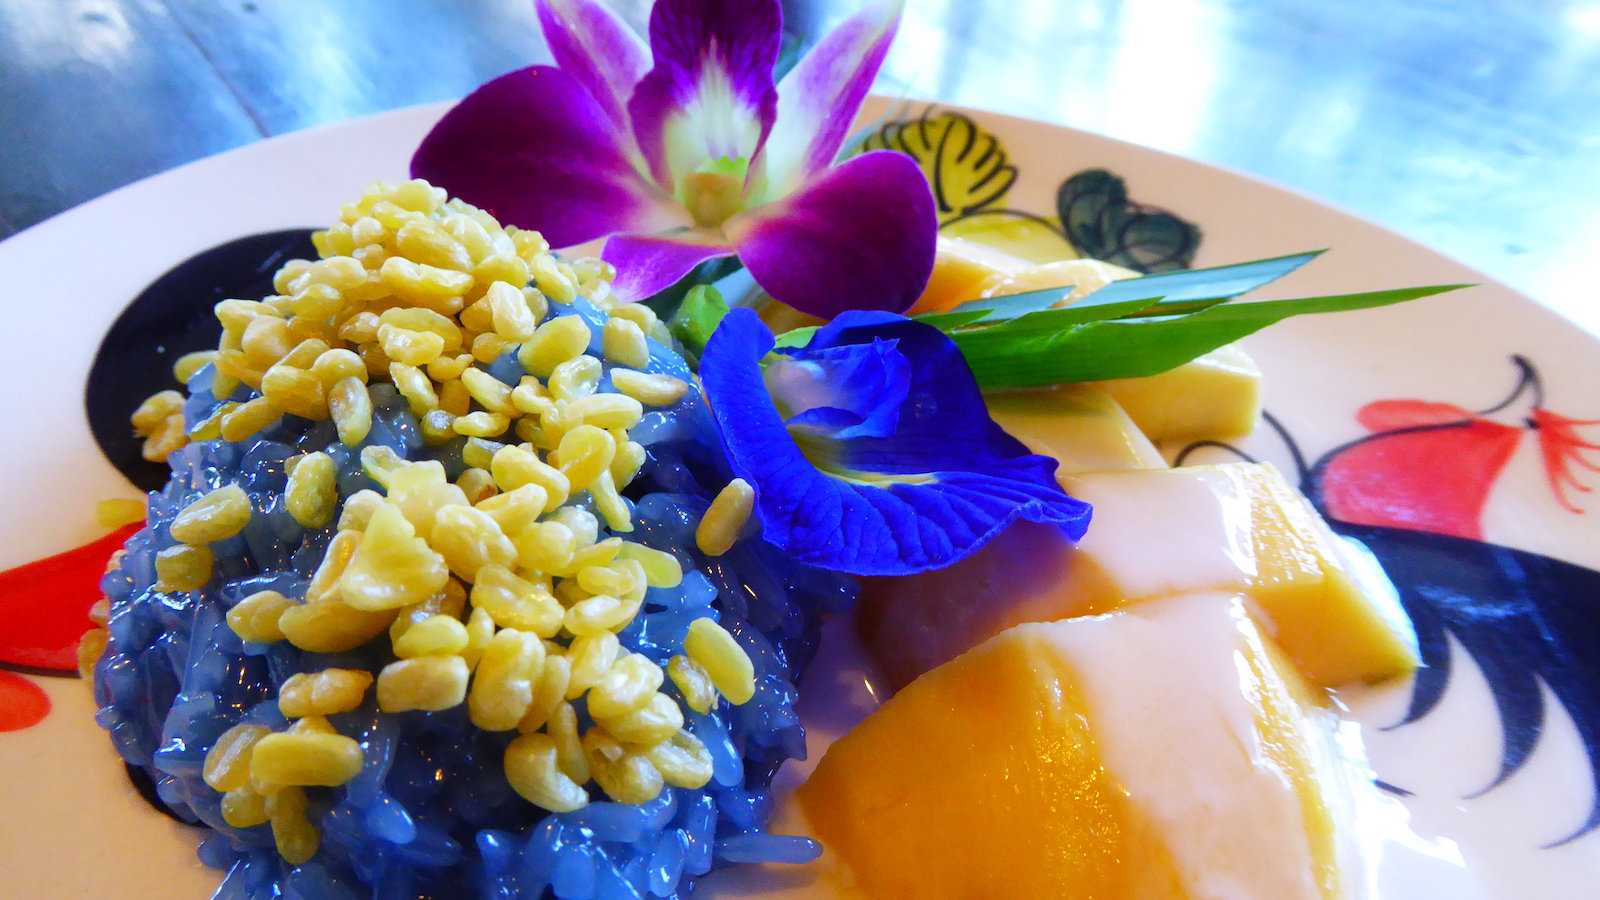 One of the most popular desserts in Thailand is the simple mango with sticky rice dish